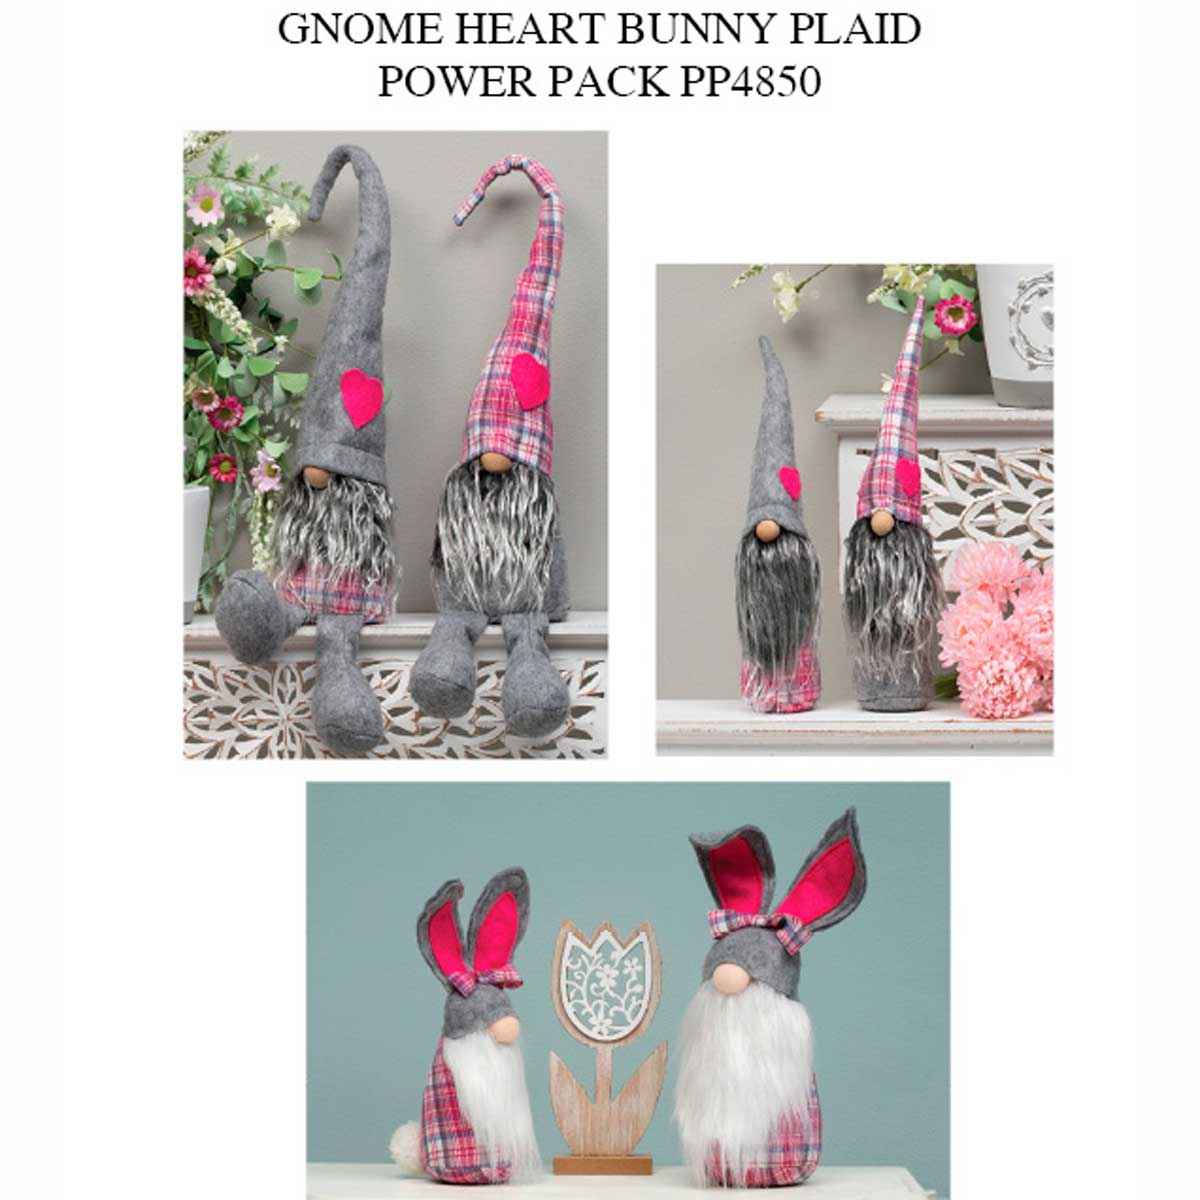 Plaid Heart/Bunny Power Pack 18 Units PP4850